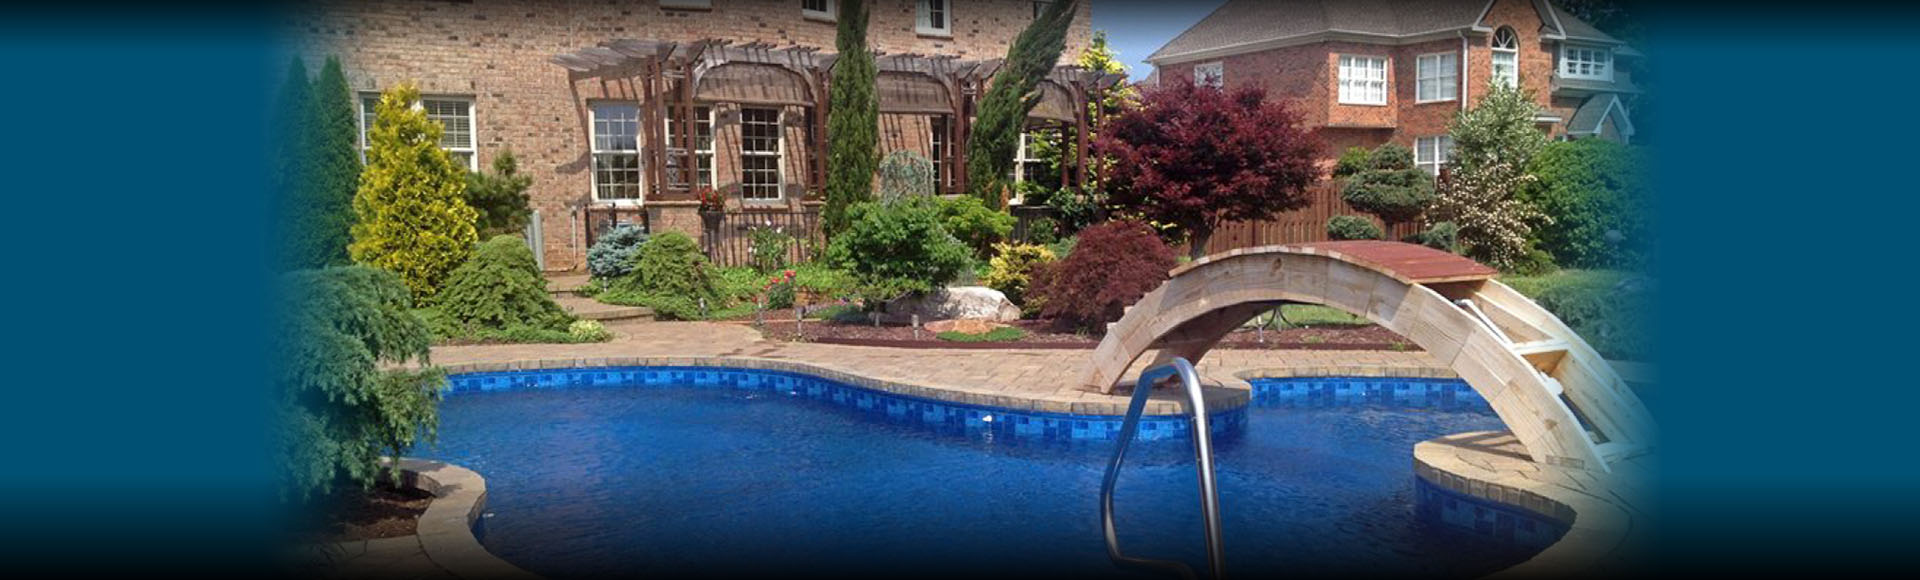 Custom Pool design with Bridge by Guilford Pools